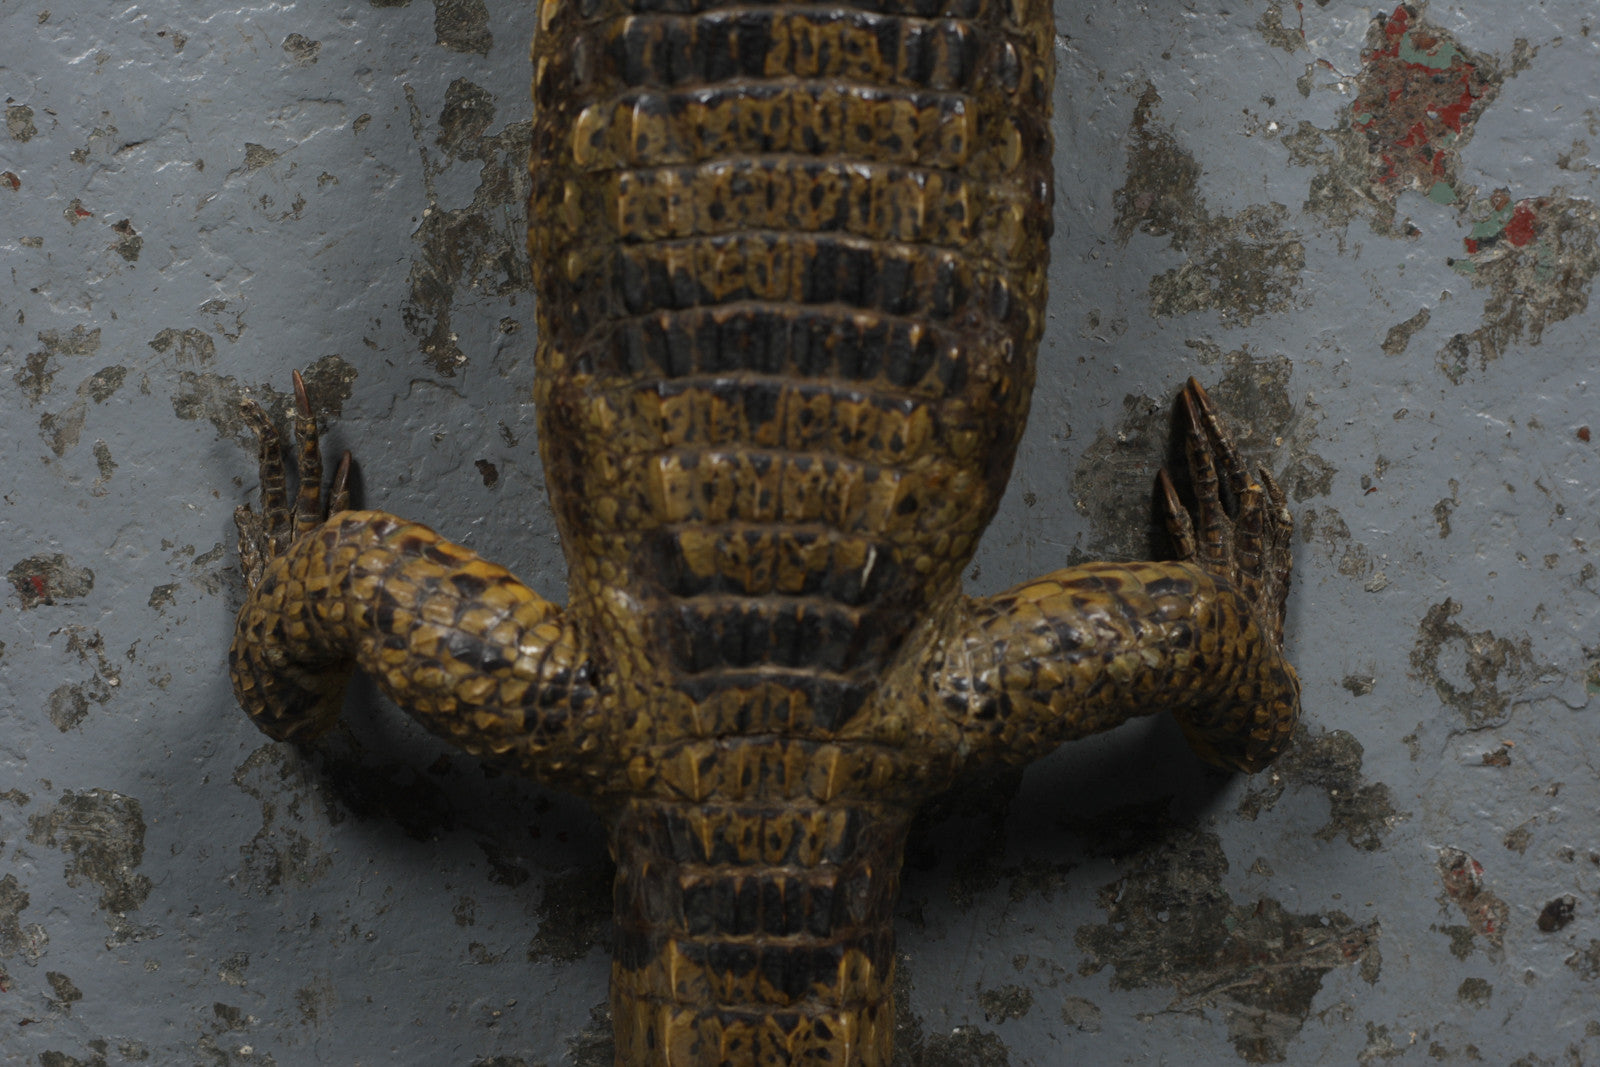 Vintage small taxidermy crocodile available for sale from Industrious Interiors, an online vintage furniture and homeware store based in Nottingham